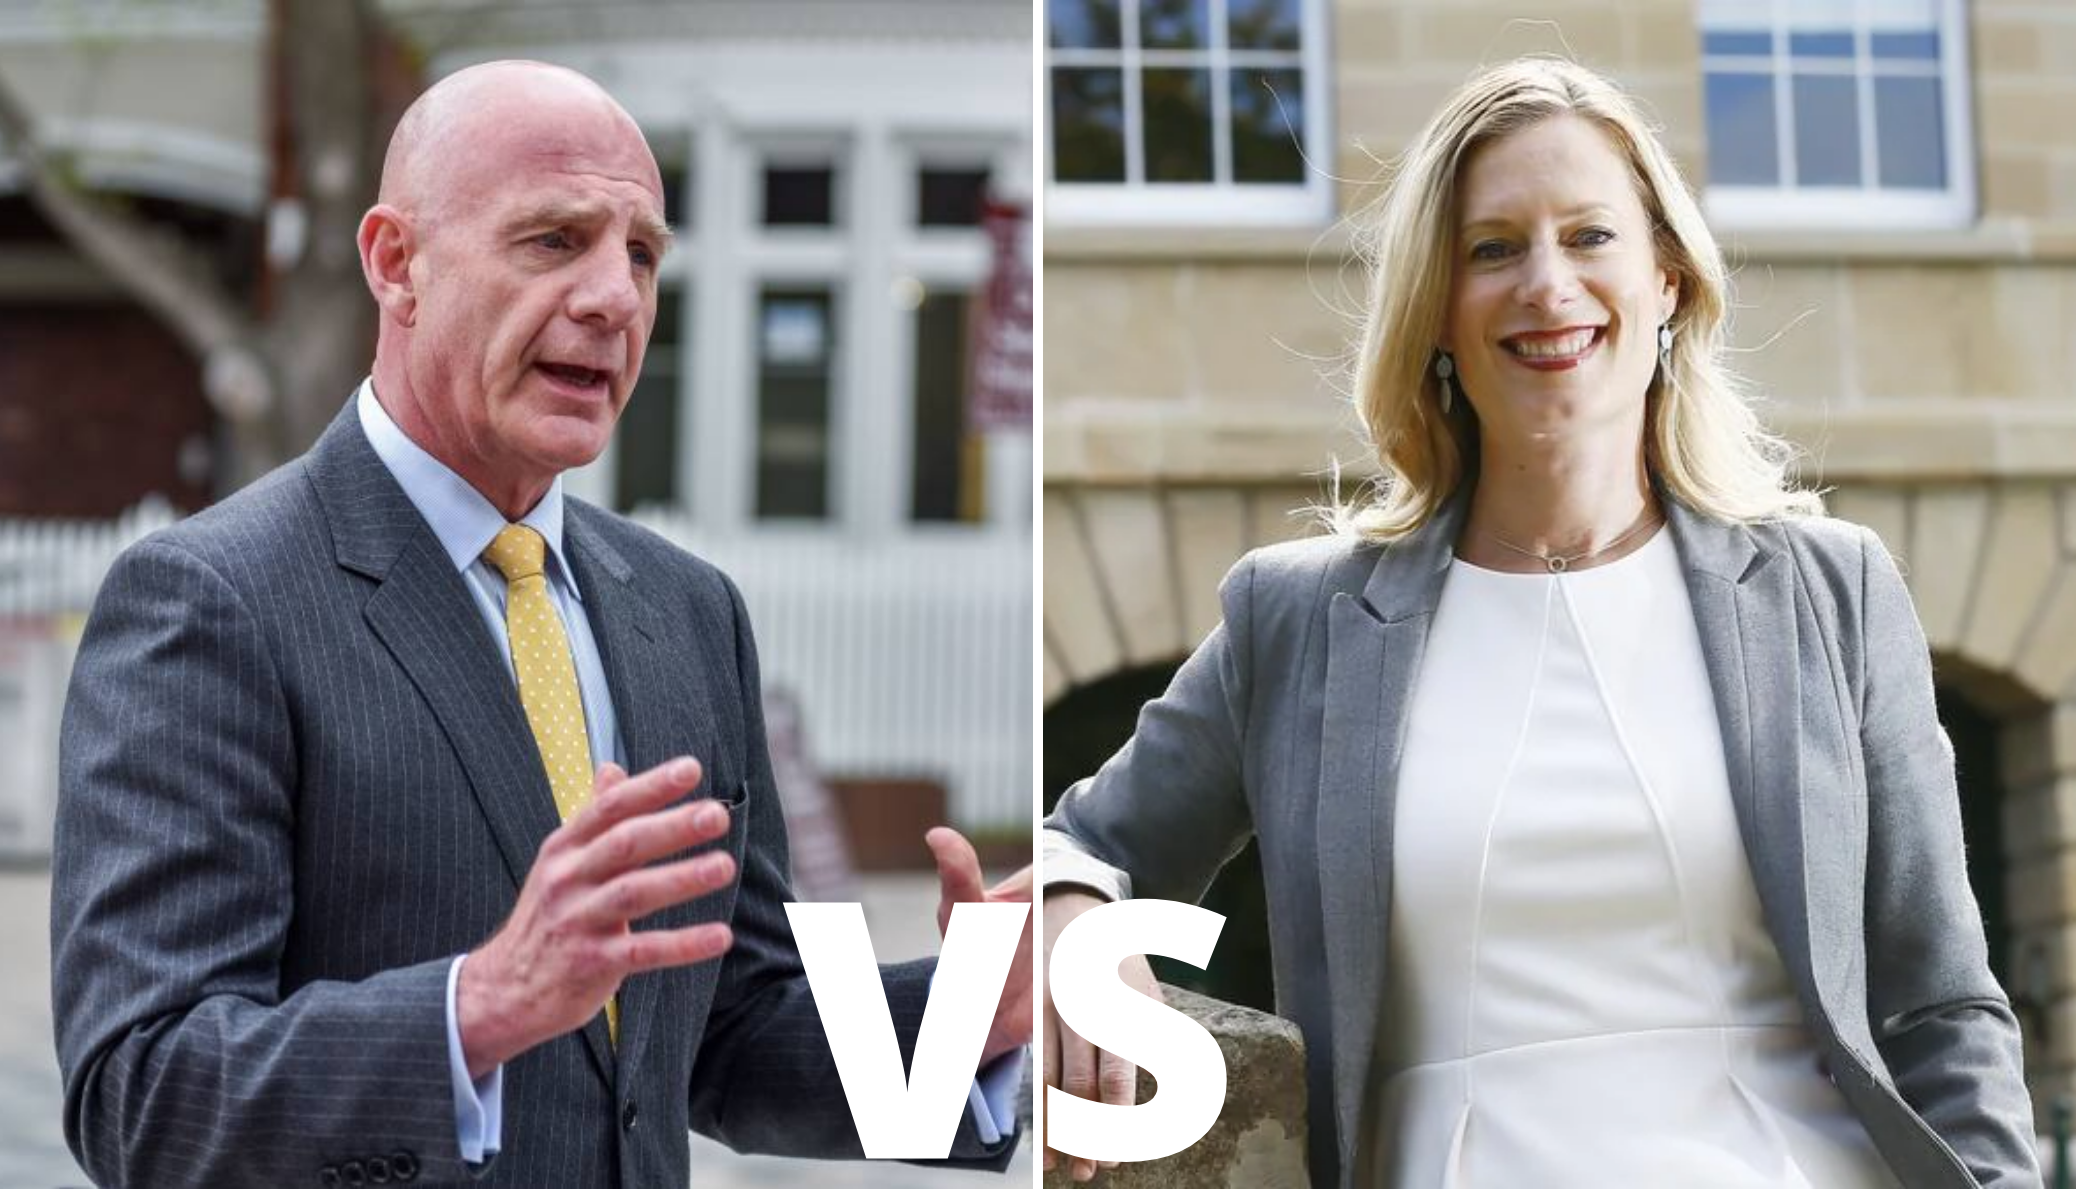 TAS-MANIA! : THE FINAL HOURS – ELECTION PREVIEW 2021